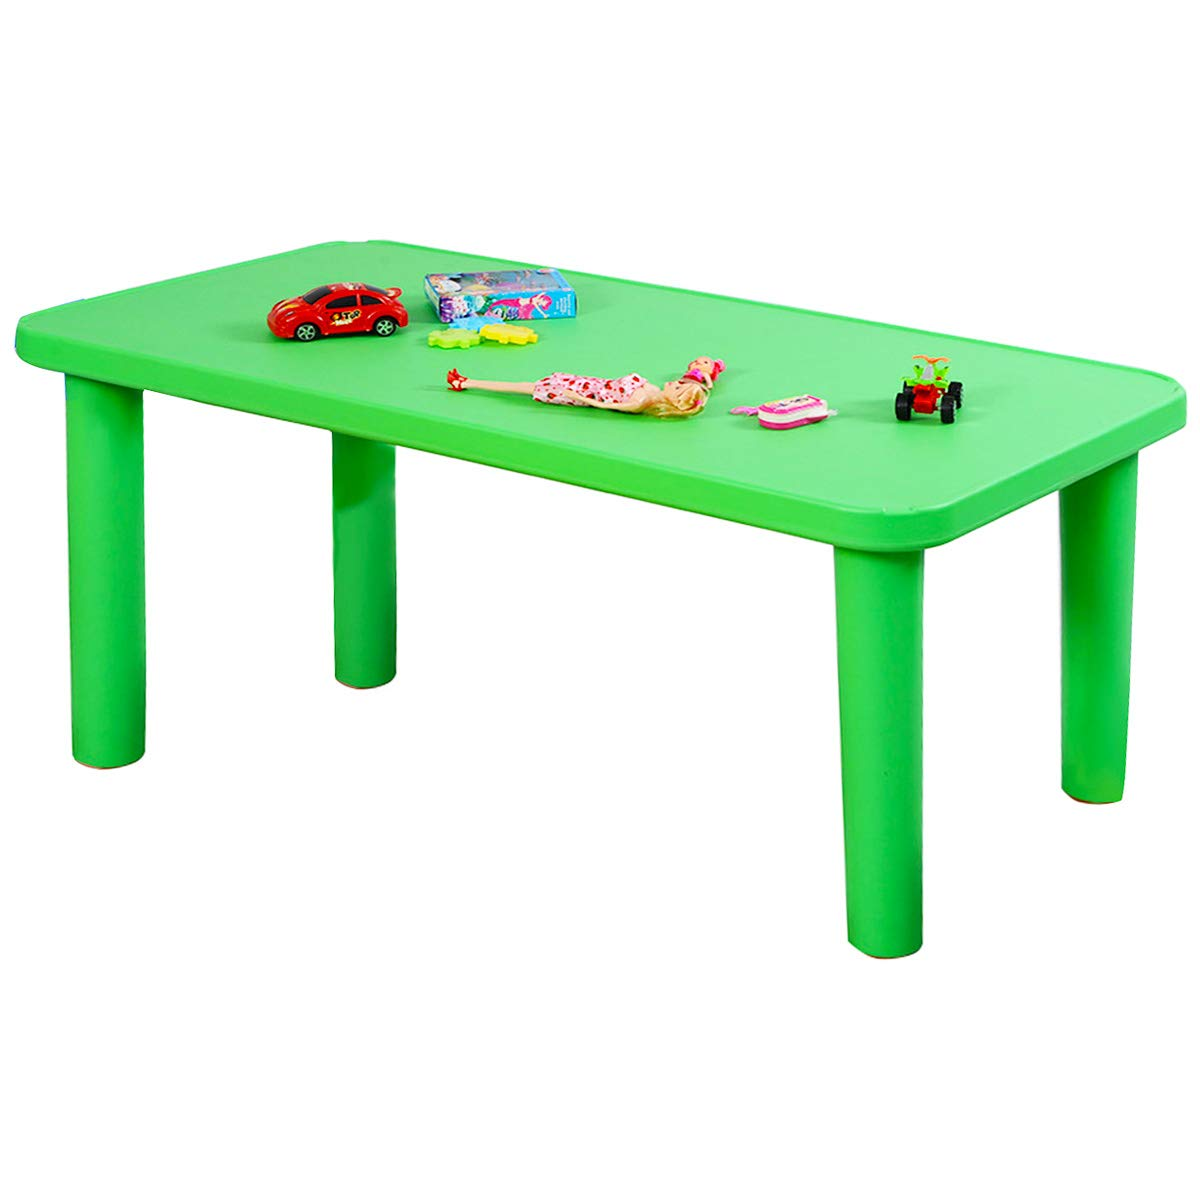 Costzon Kids Plastic Table, Portable Plastic Learn and Play Table for School Home Play Room, Activity Play Table (Table) by Costzon